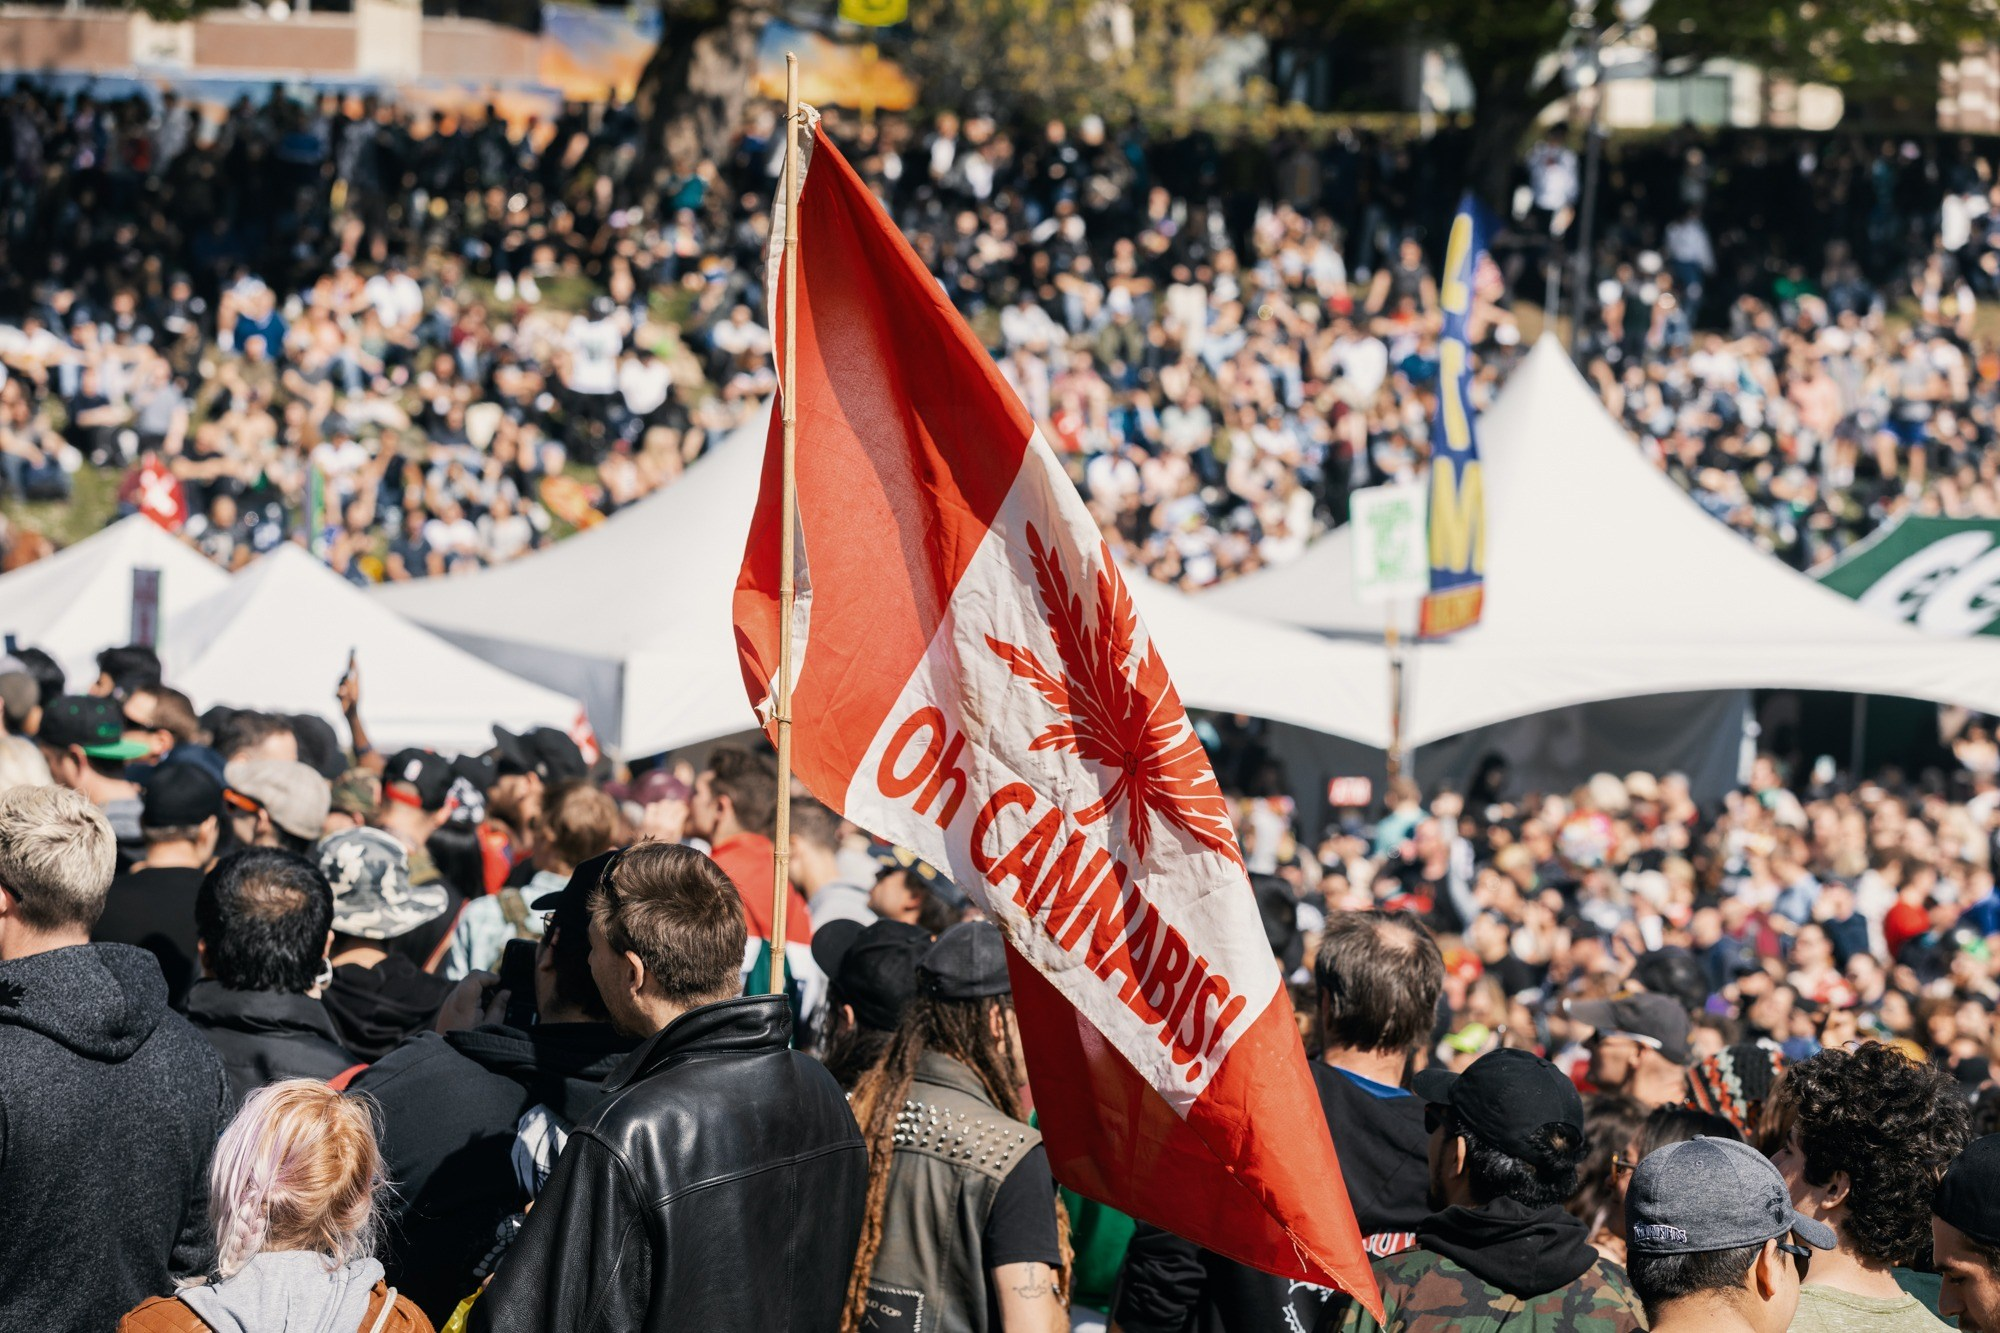 420 Vancouver 2019 Recap: The largest cannabis festival in